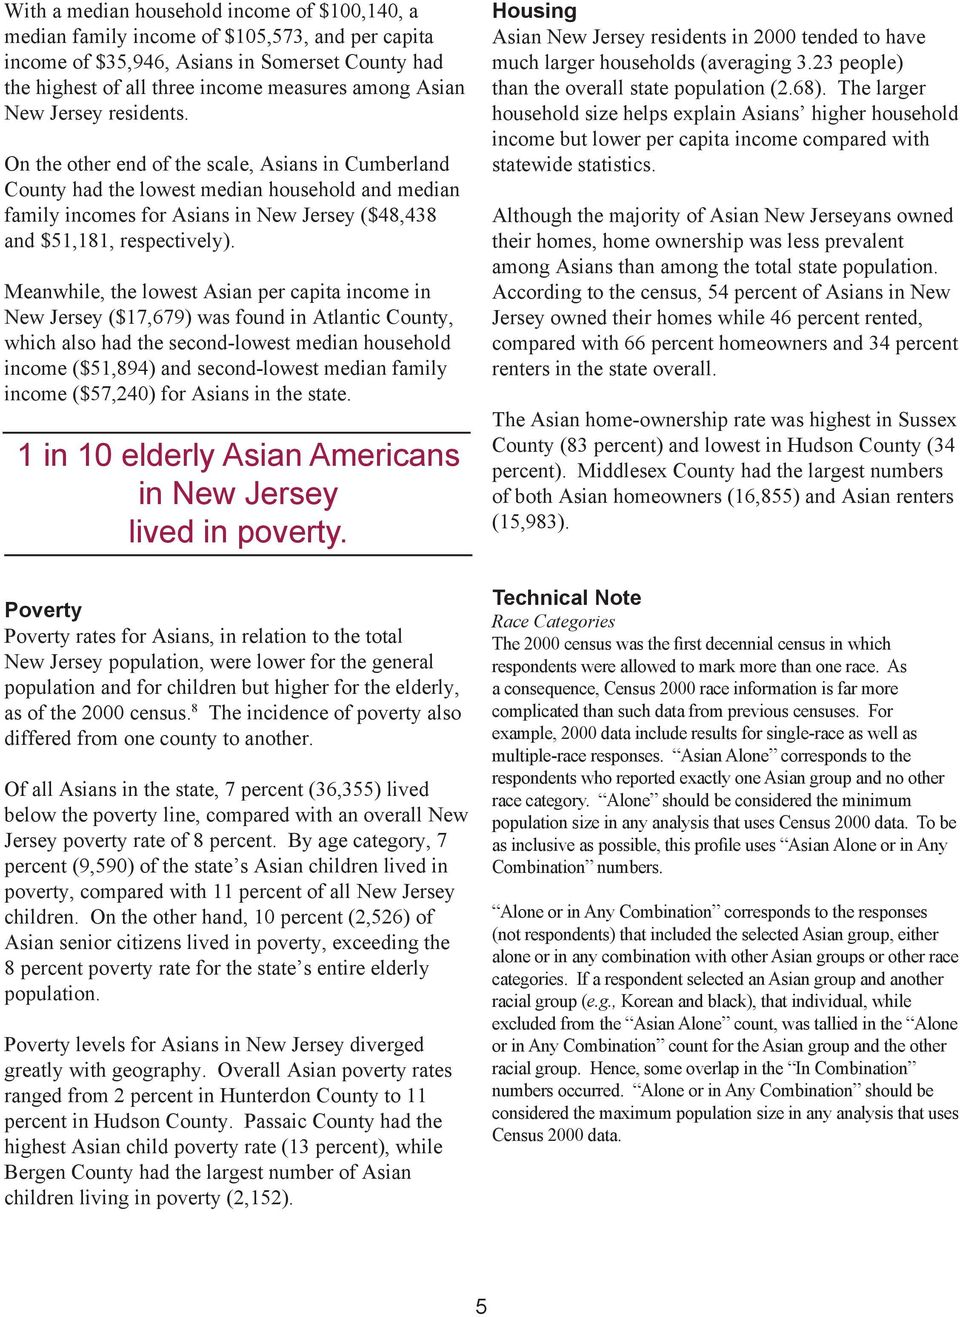 Meanwhile, the lowest Asian per capita income in New Jersey ($17,679) was found in Atlantic, which also had the second-lowest median household income ($51,894) and second-lowest median family income